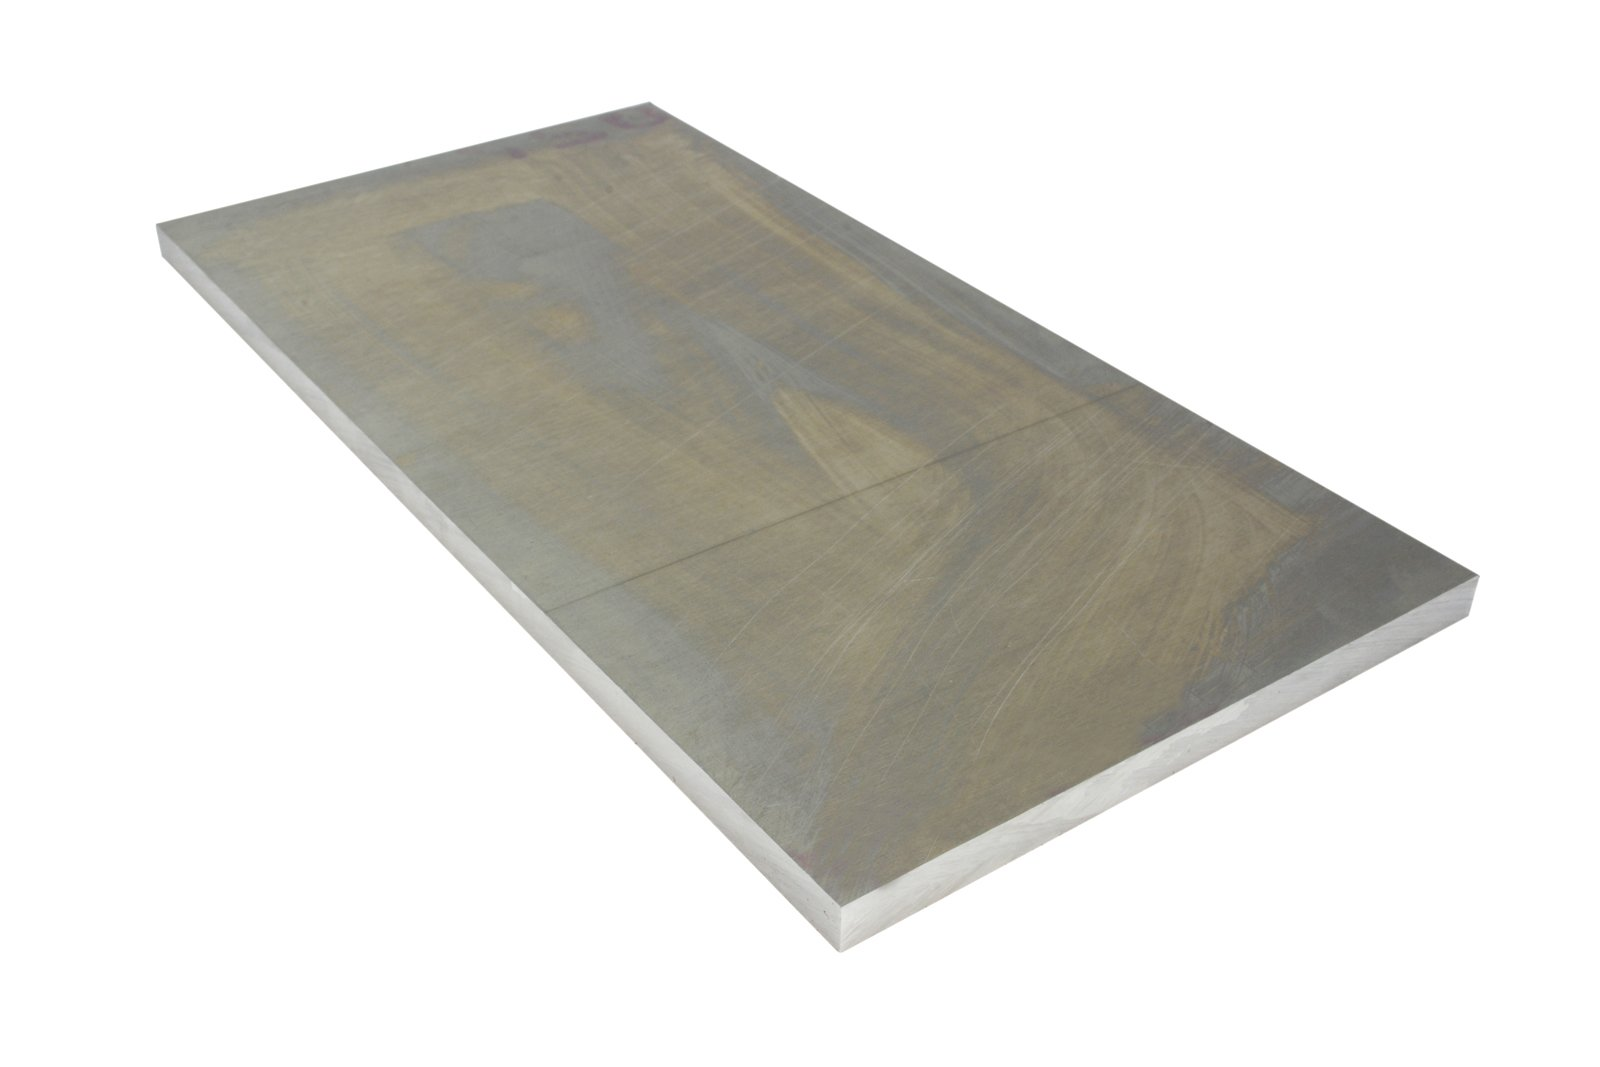 TEMCo 1/4 Inch 6''x12'' 6061 Aluminum Tooling Flat Sheet Plate Bar Mill Stock by Temco